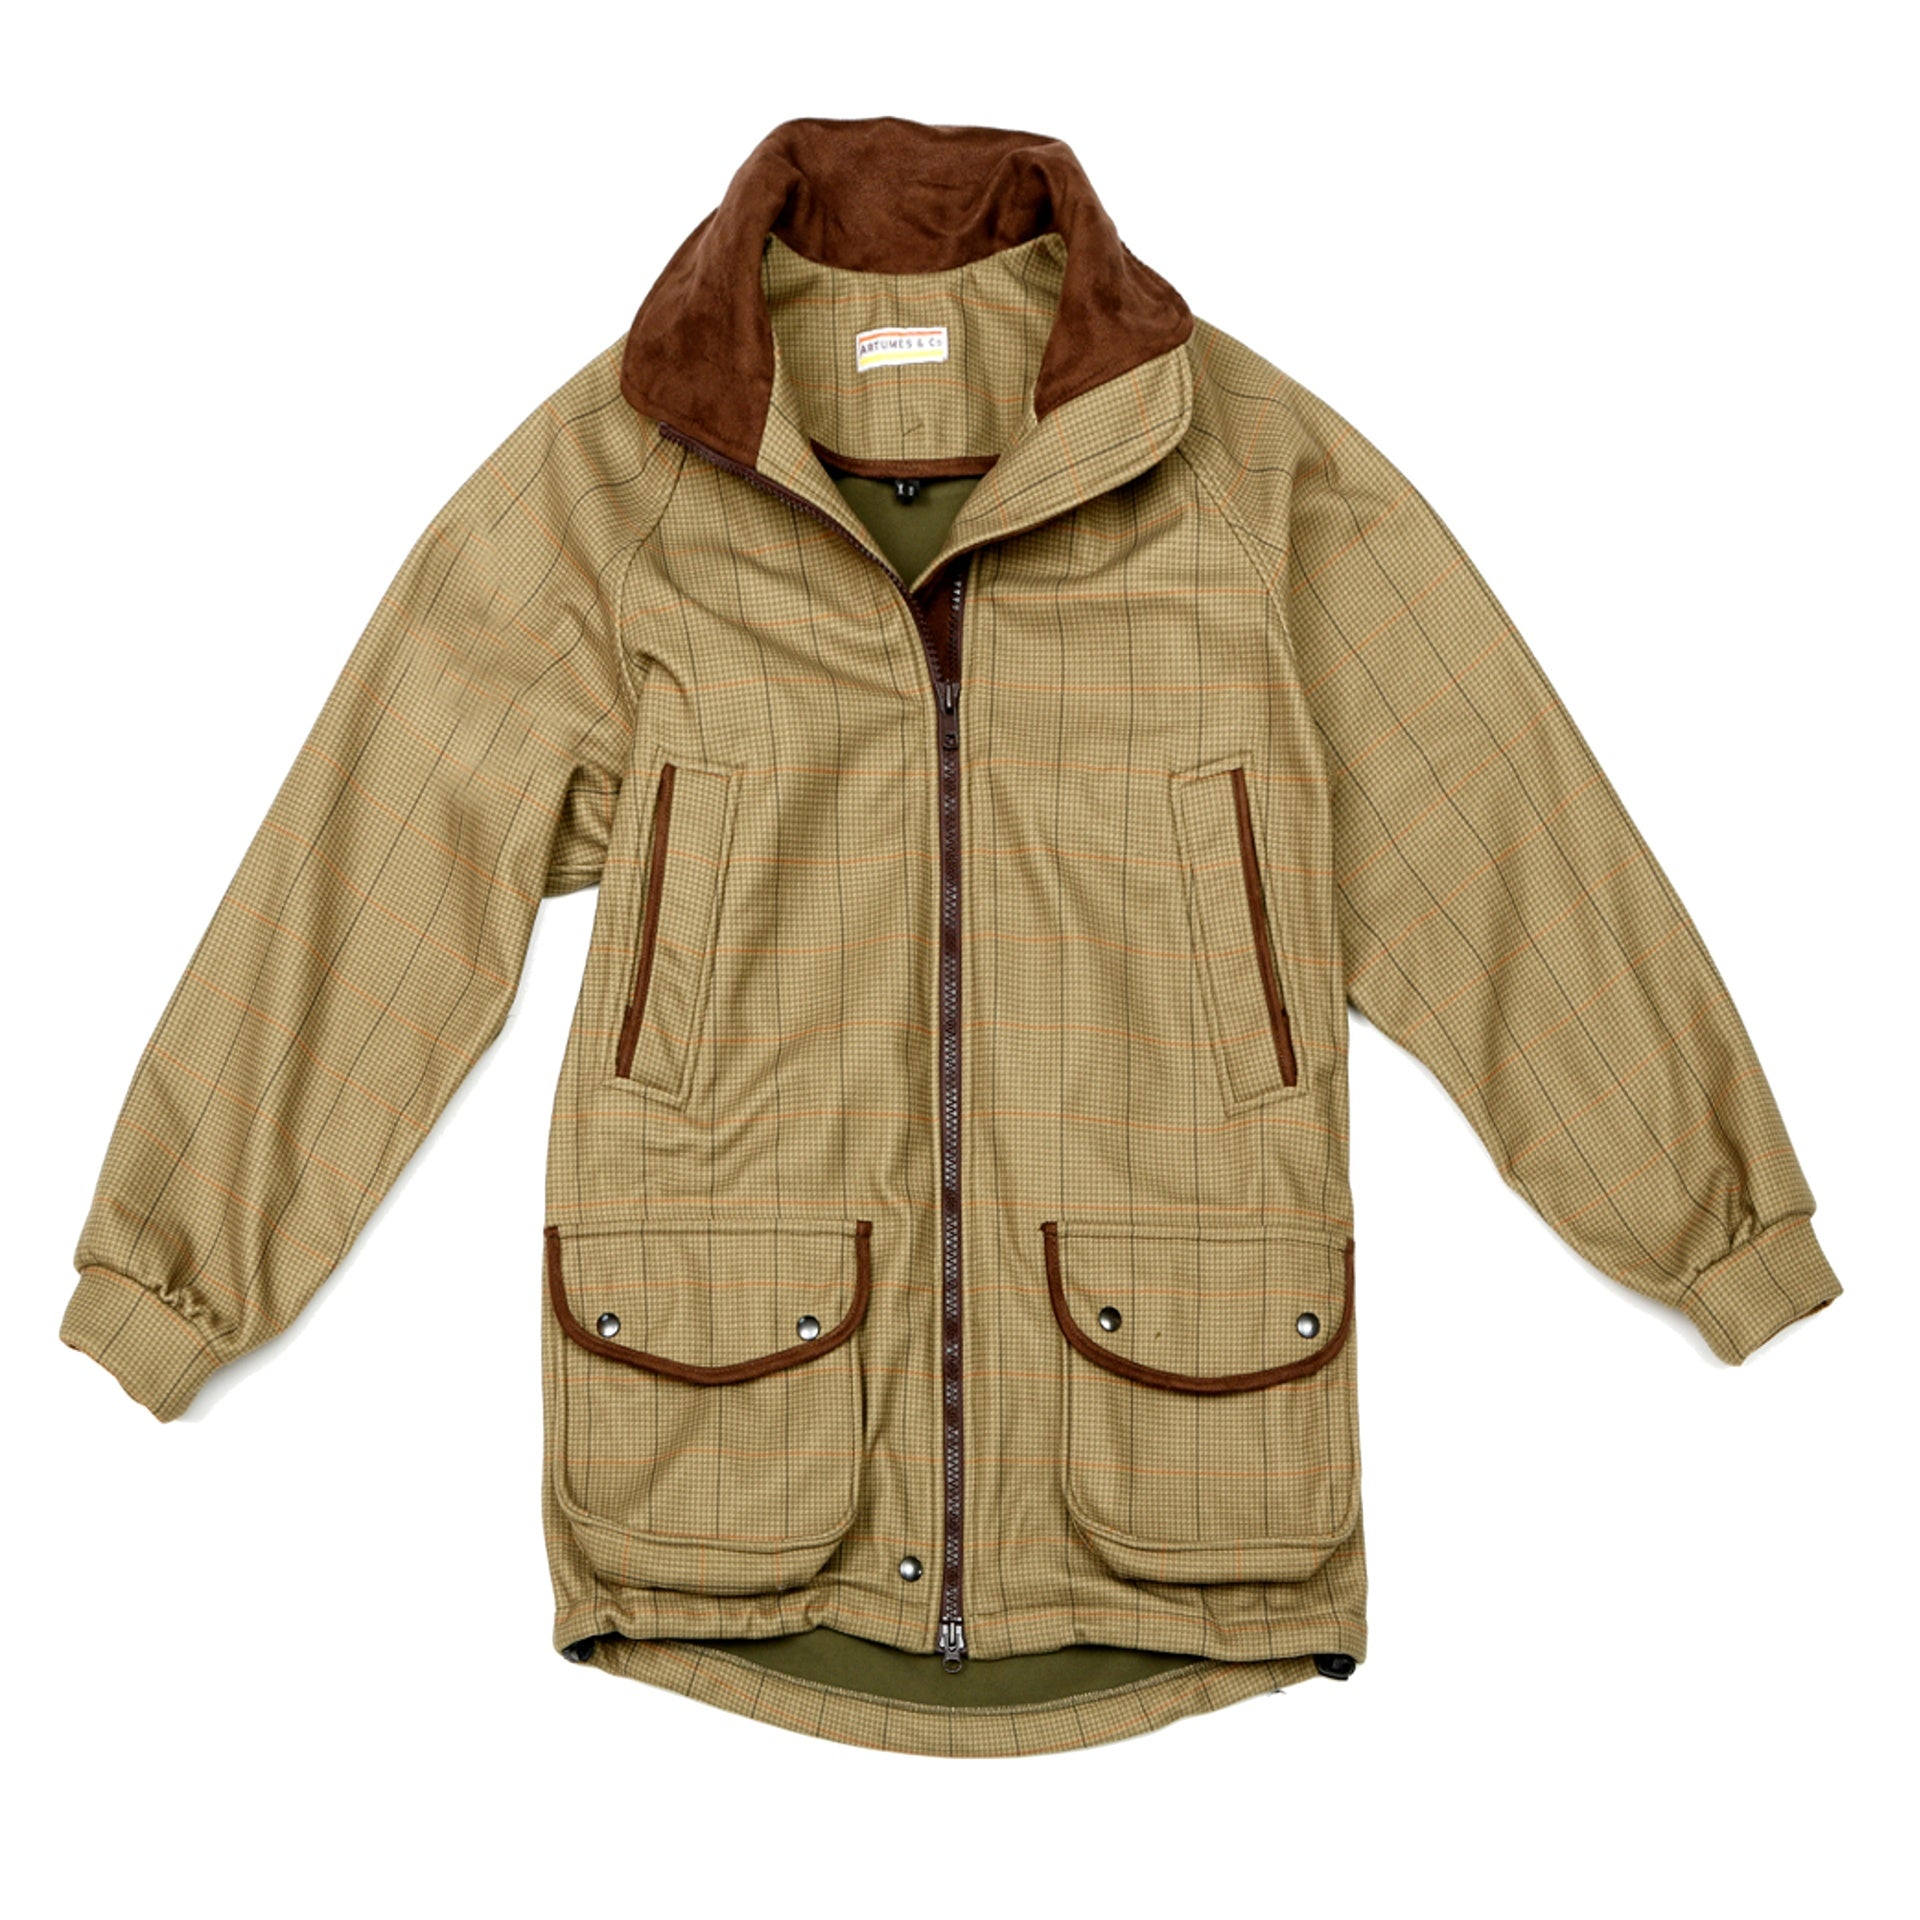 Field-coat Gameshooter ladies argyll tweed